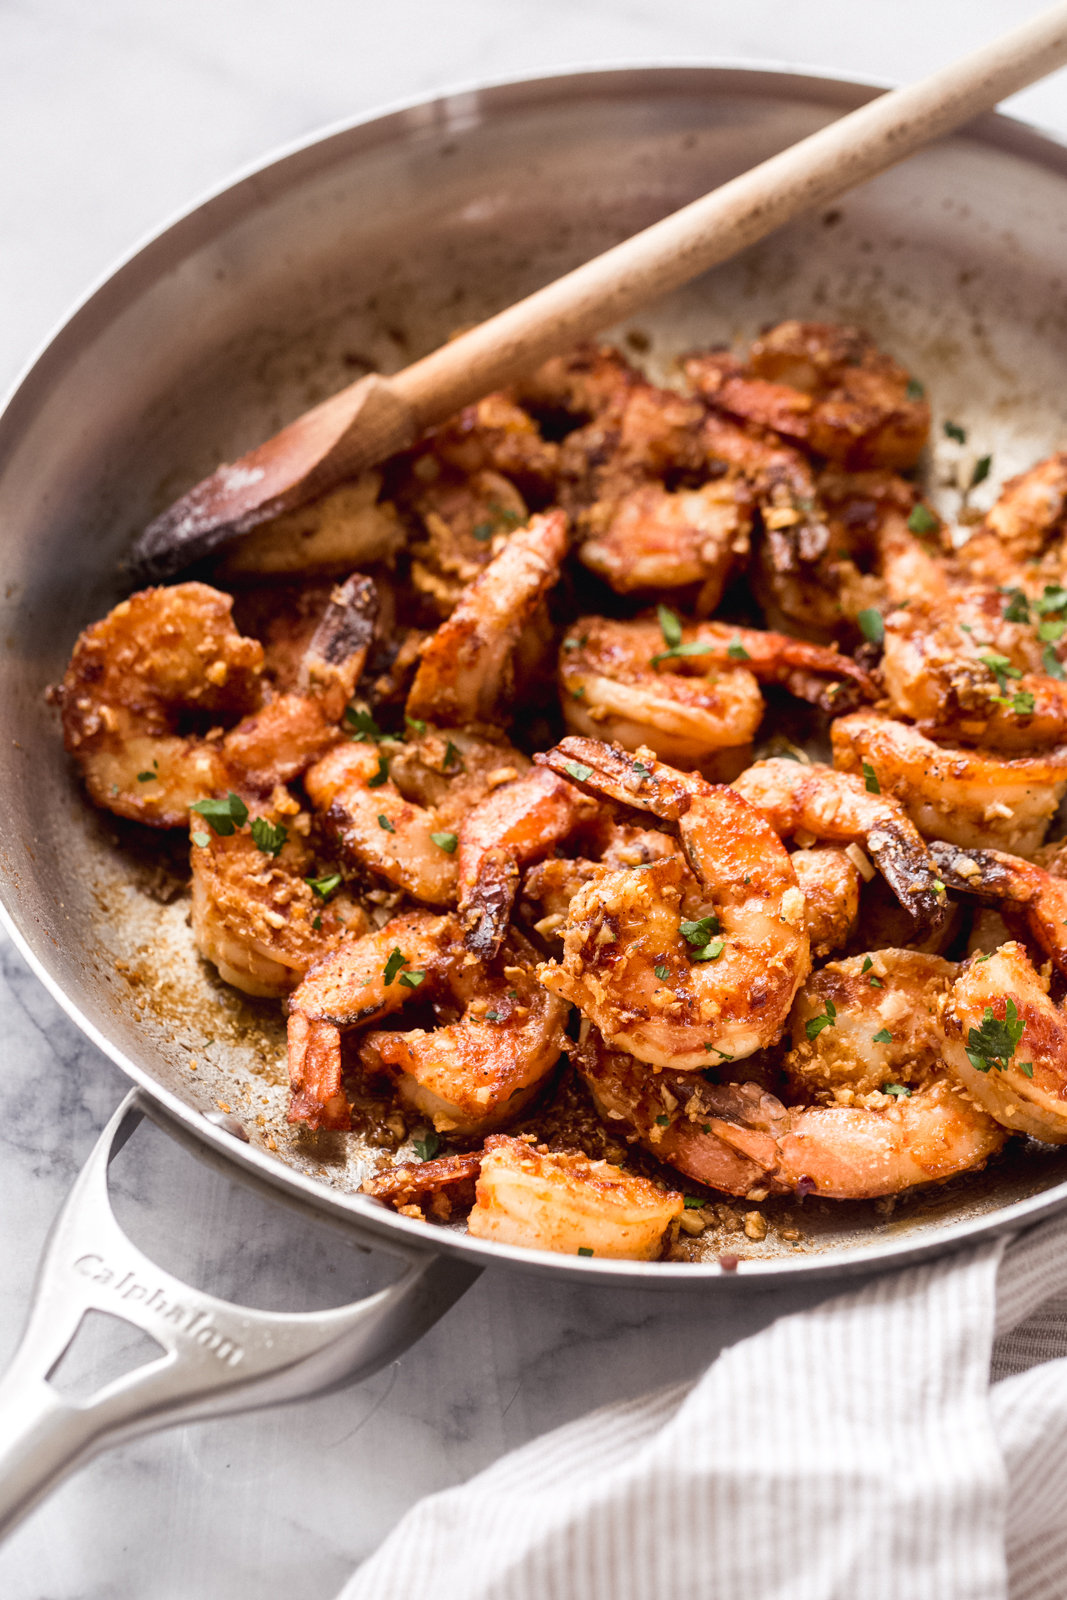 skillet with prepared Hawaiian shrimp scampi with wooden spoon resting